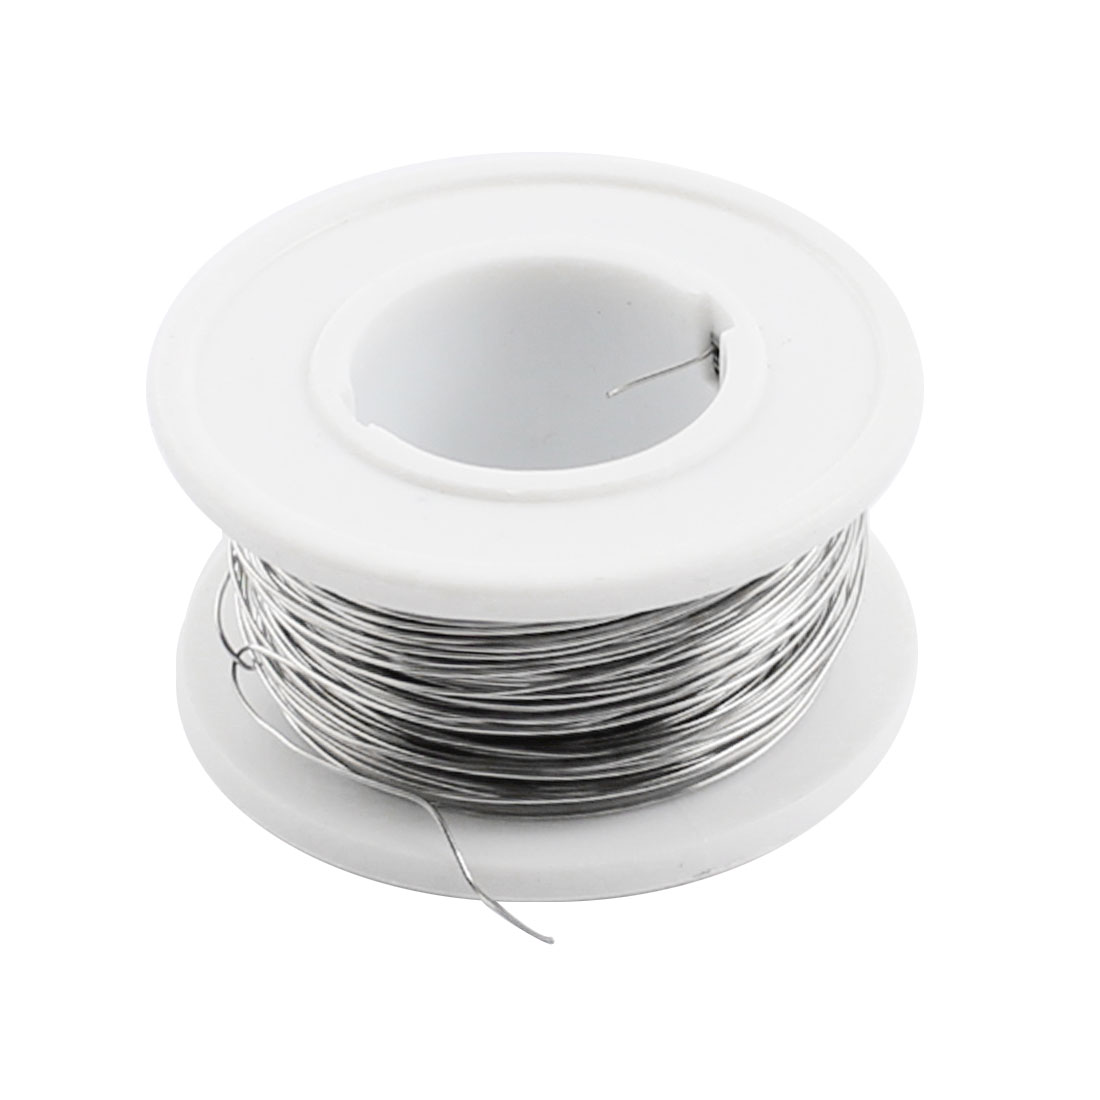 0.35mm Diameter AWG27 30meter 100ft Cable Nichrome Resistance Resistor Wire Cable for Heating Elements